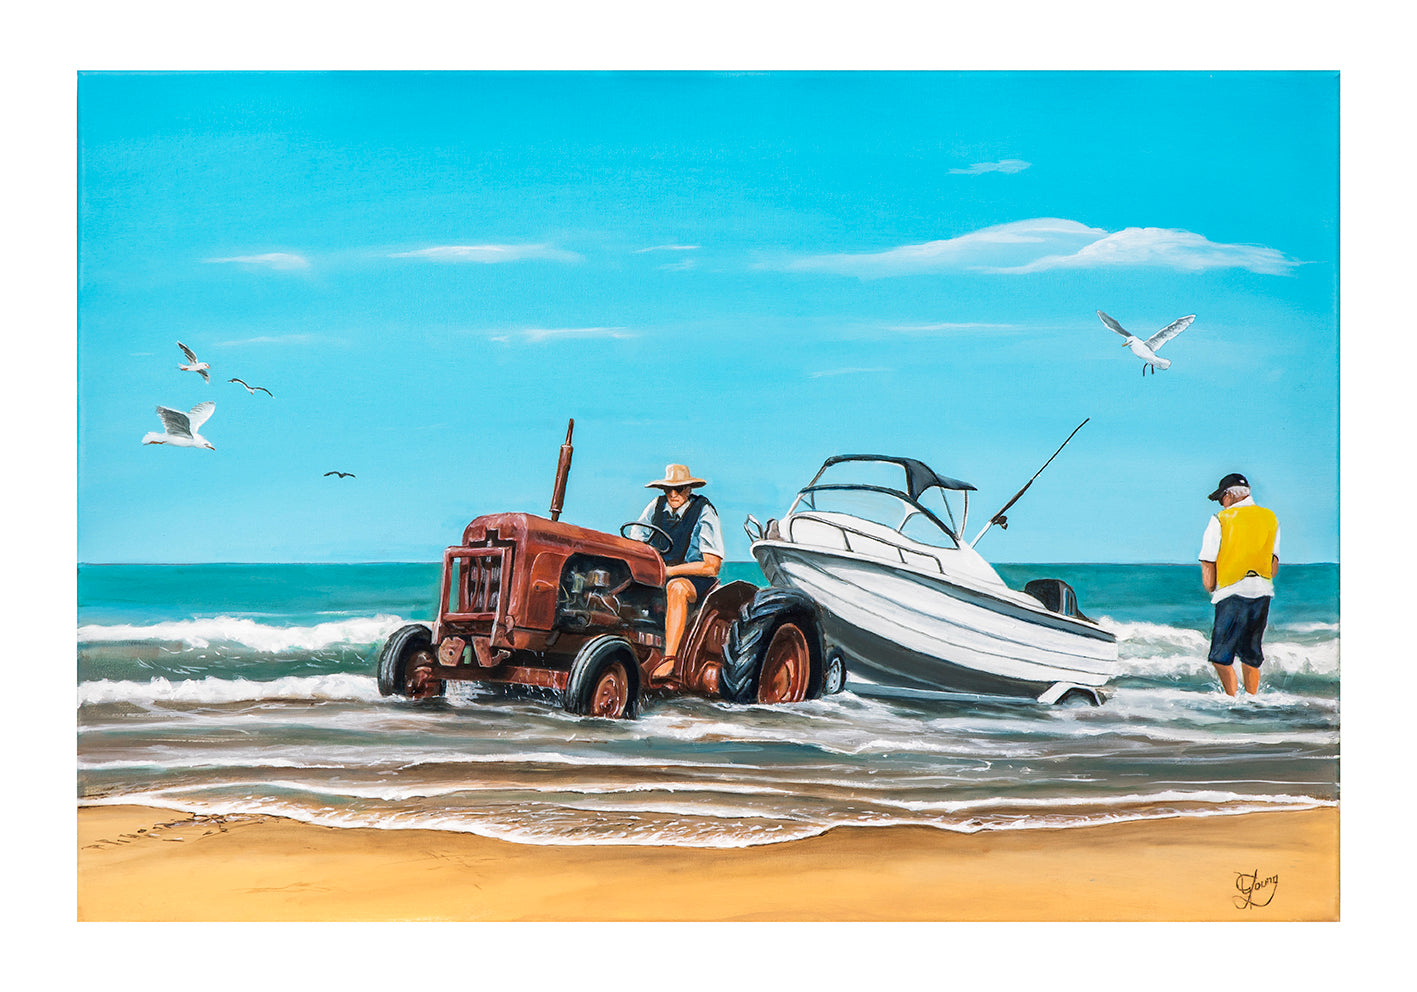 Towing the boat ashore - grahamyoungartist.com - Original Artwork and Prints by New Zealand Artist Graham Young